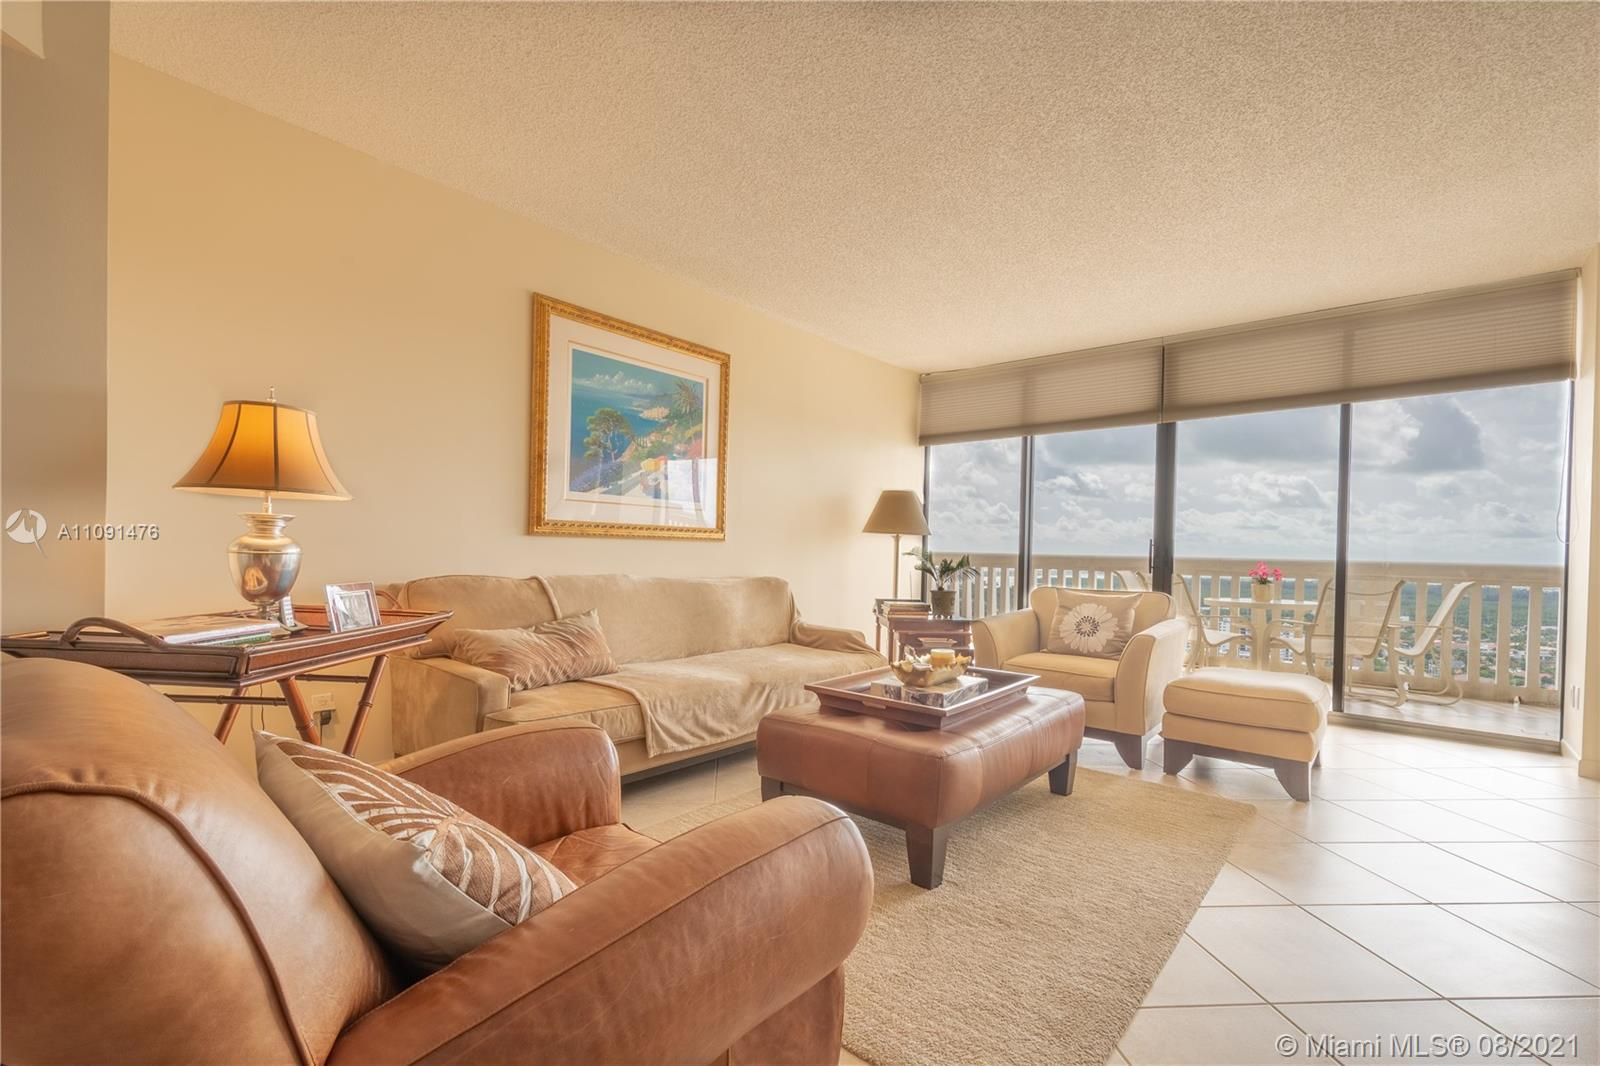 SPECTACULAR VIEWS OF OCEAN, INTRACOASTAL AND ENTIRE SKYLINE OF SOUTH BEACH TO DOWNTOWN MIAMI! SPACIO